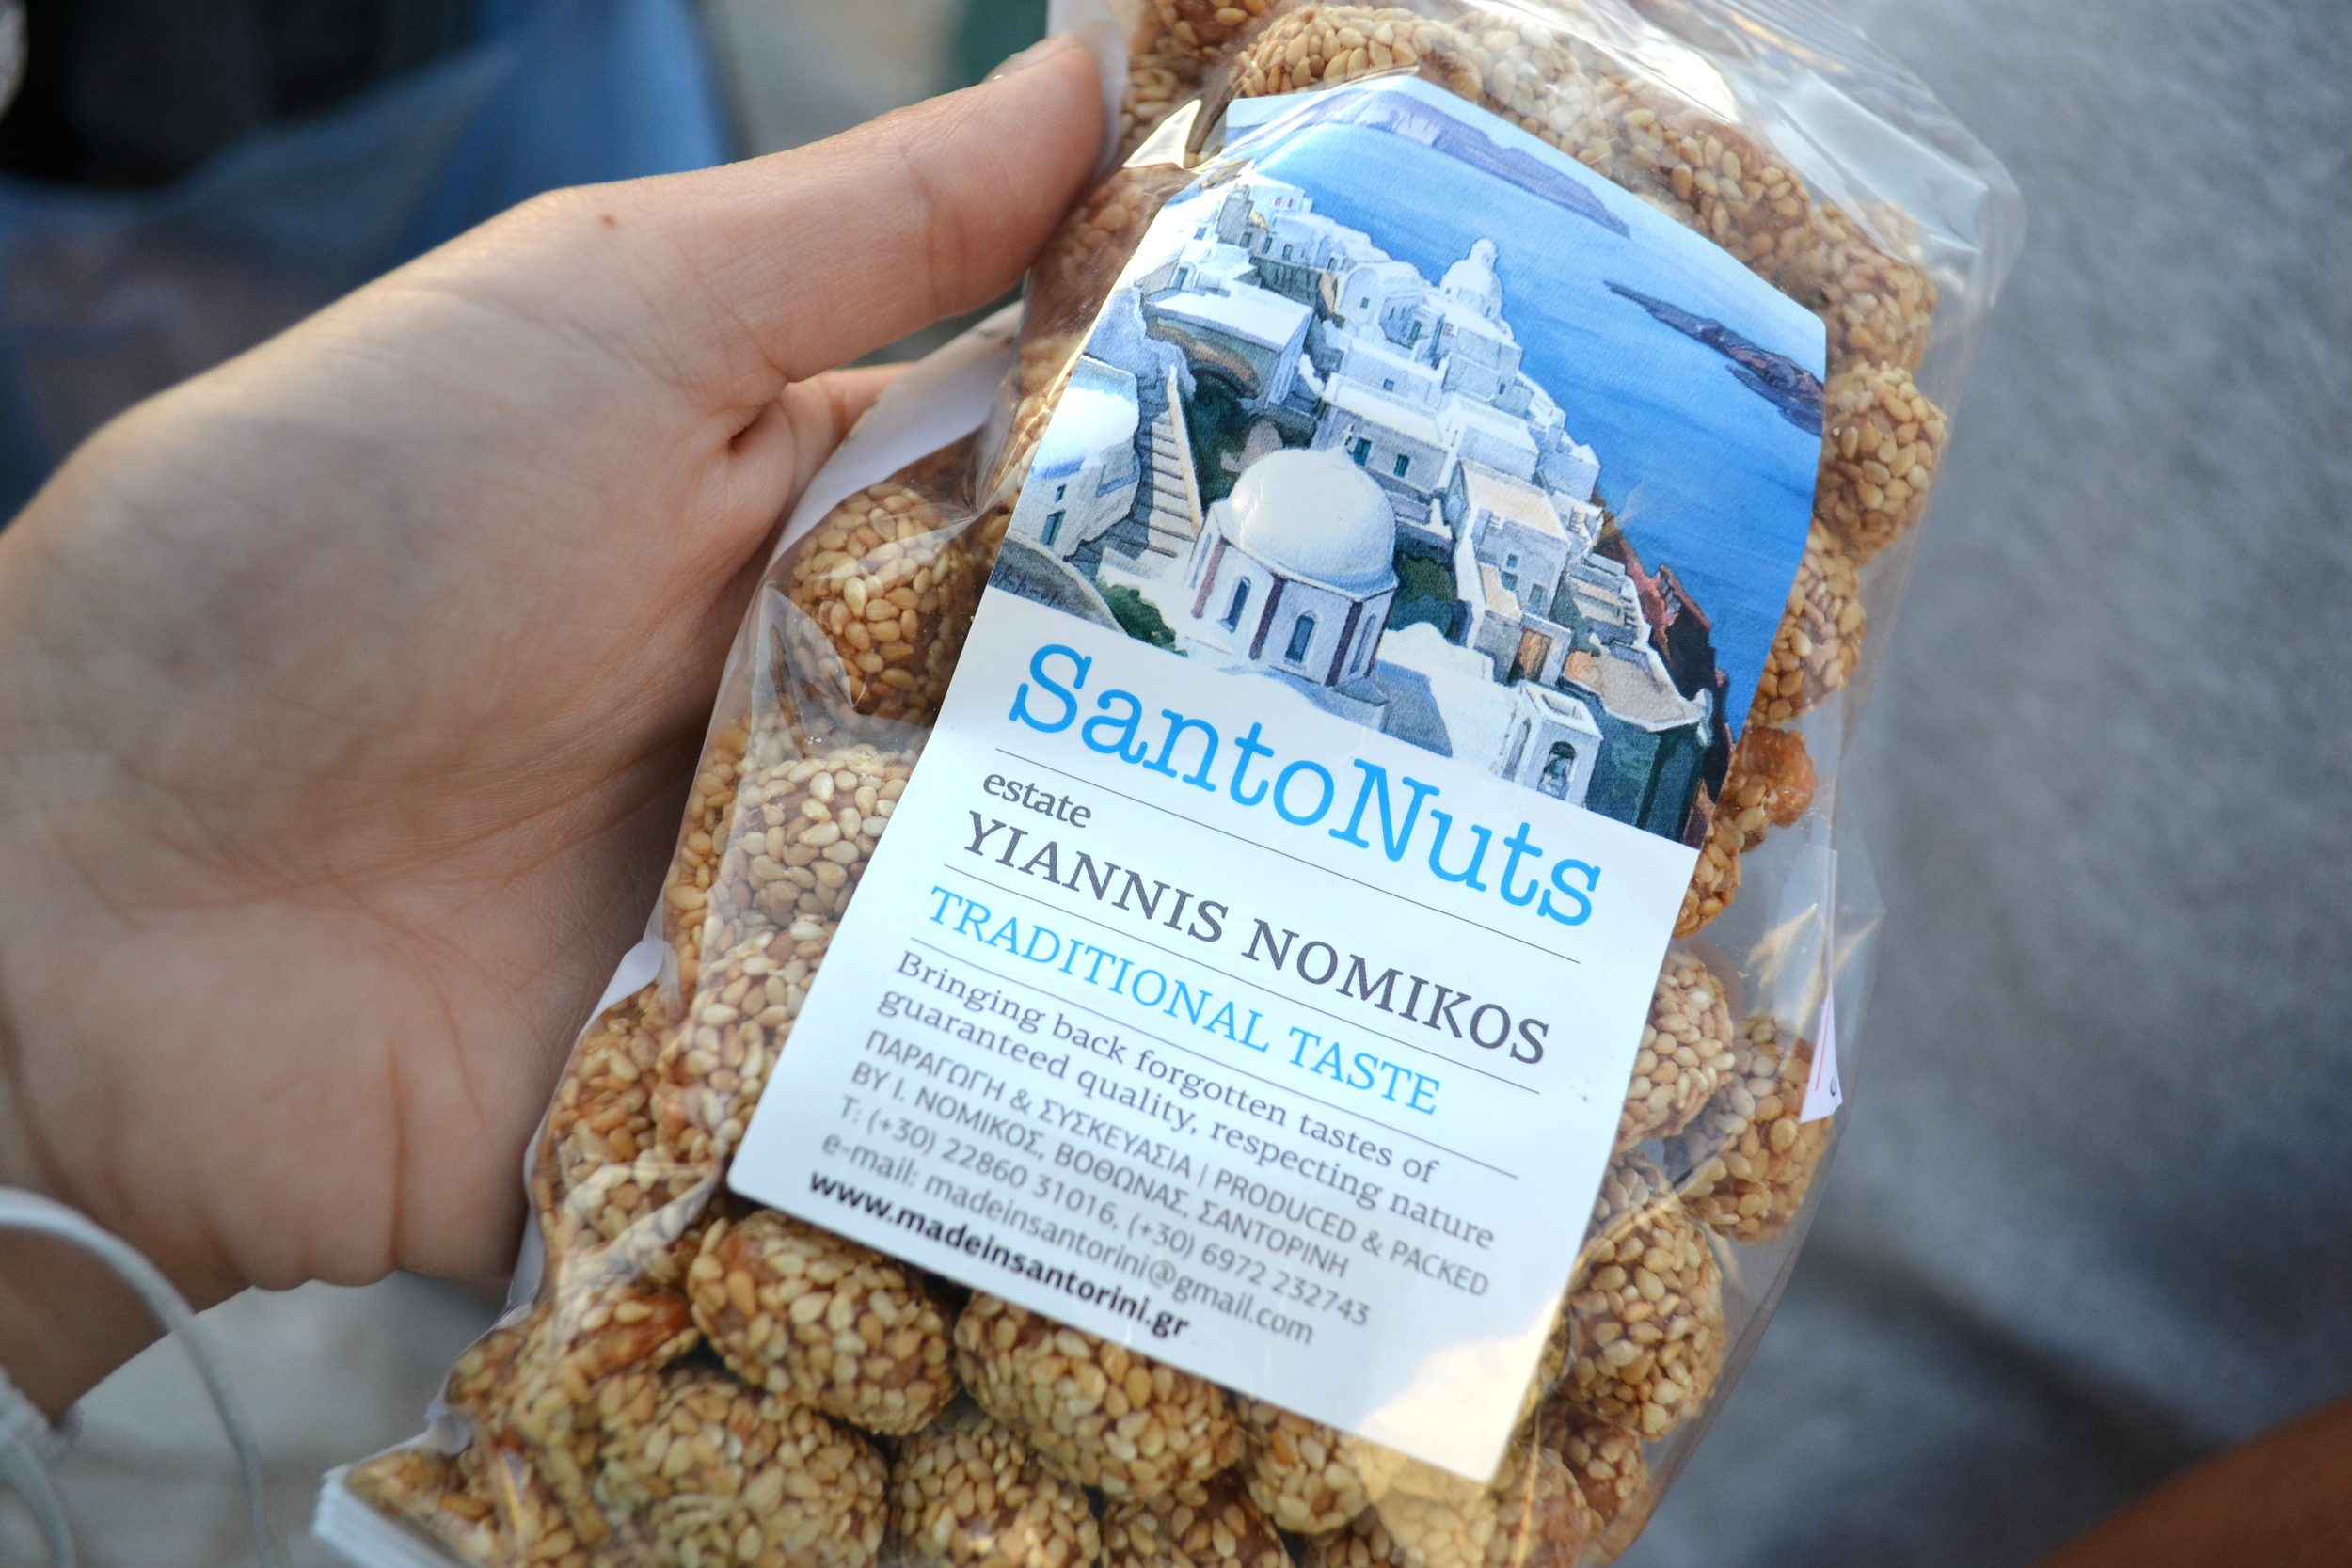 Behold, the great and formidable Santo Nuts.